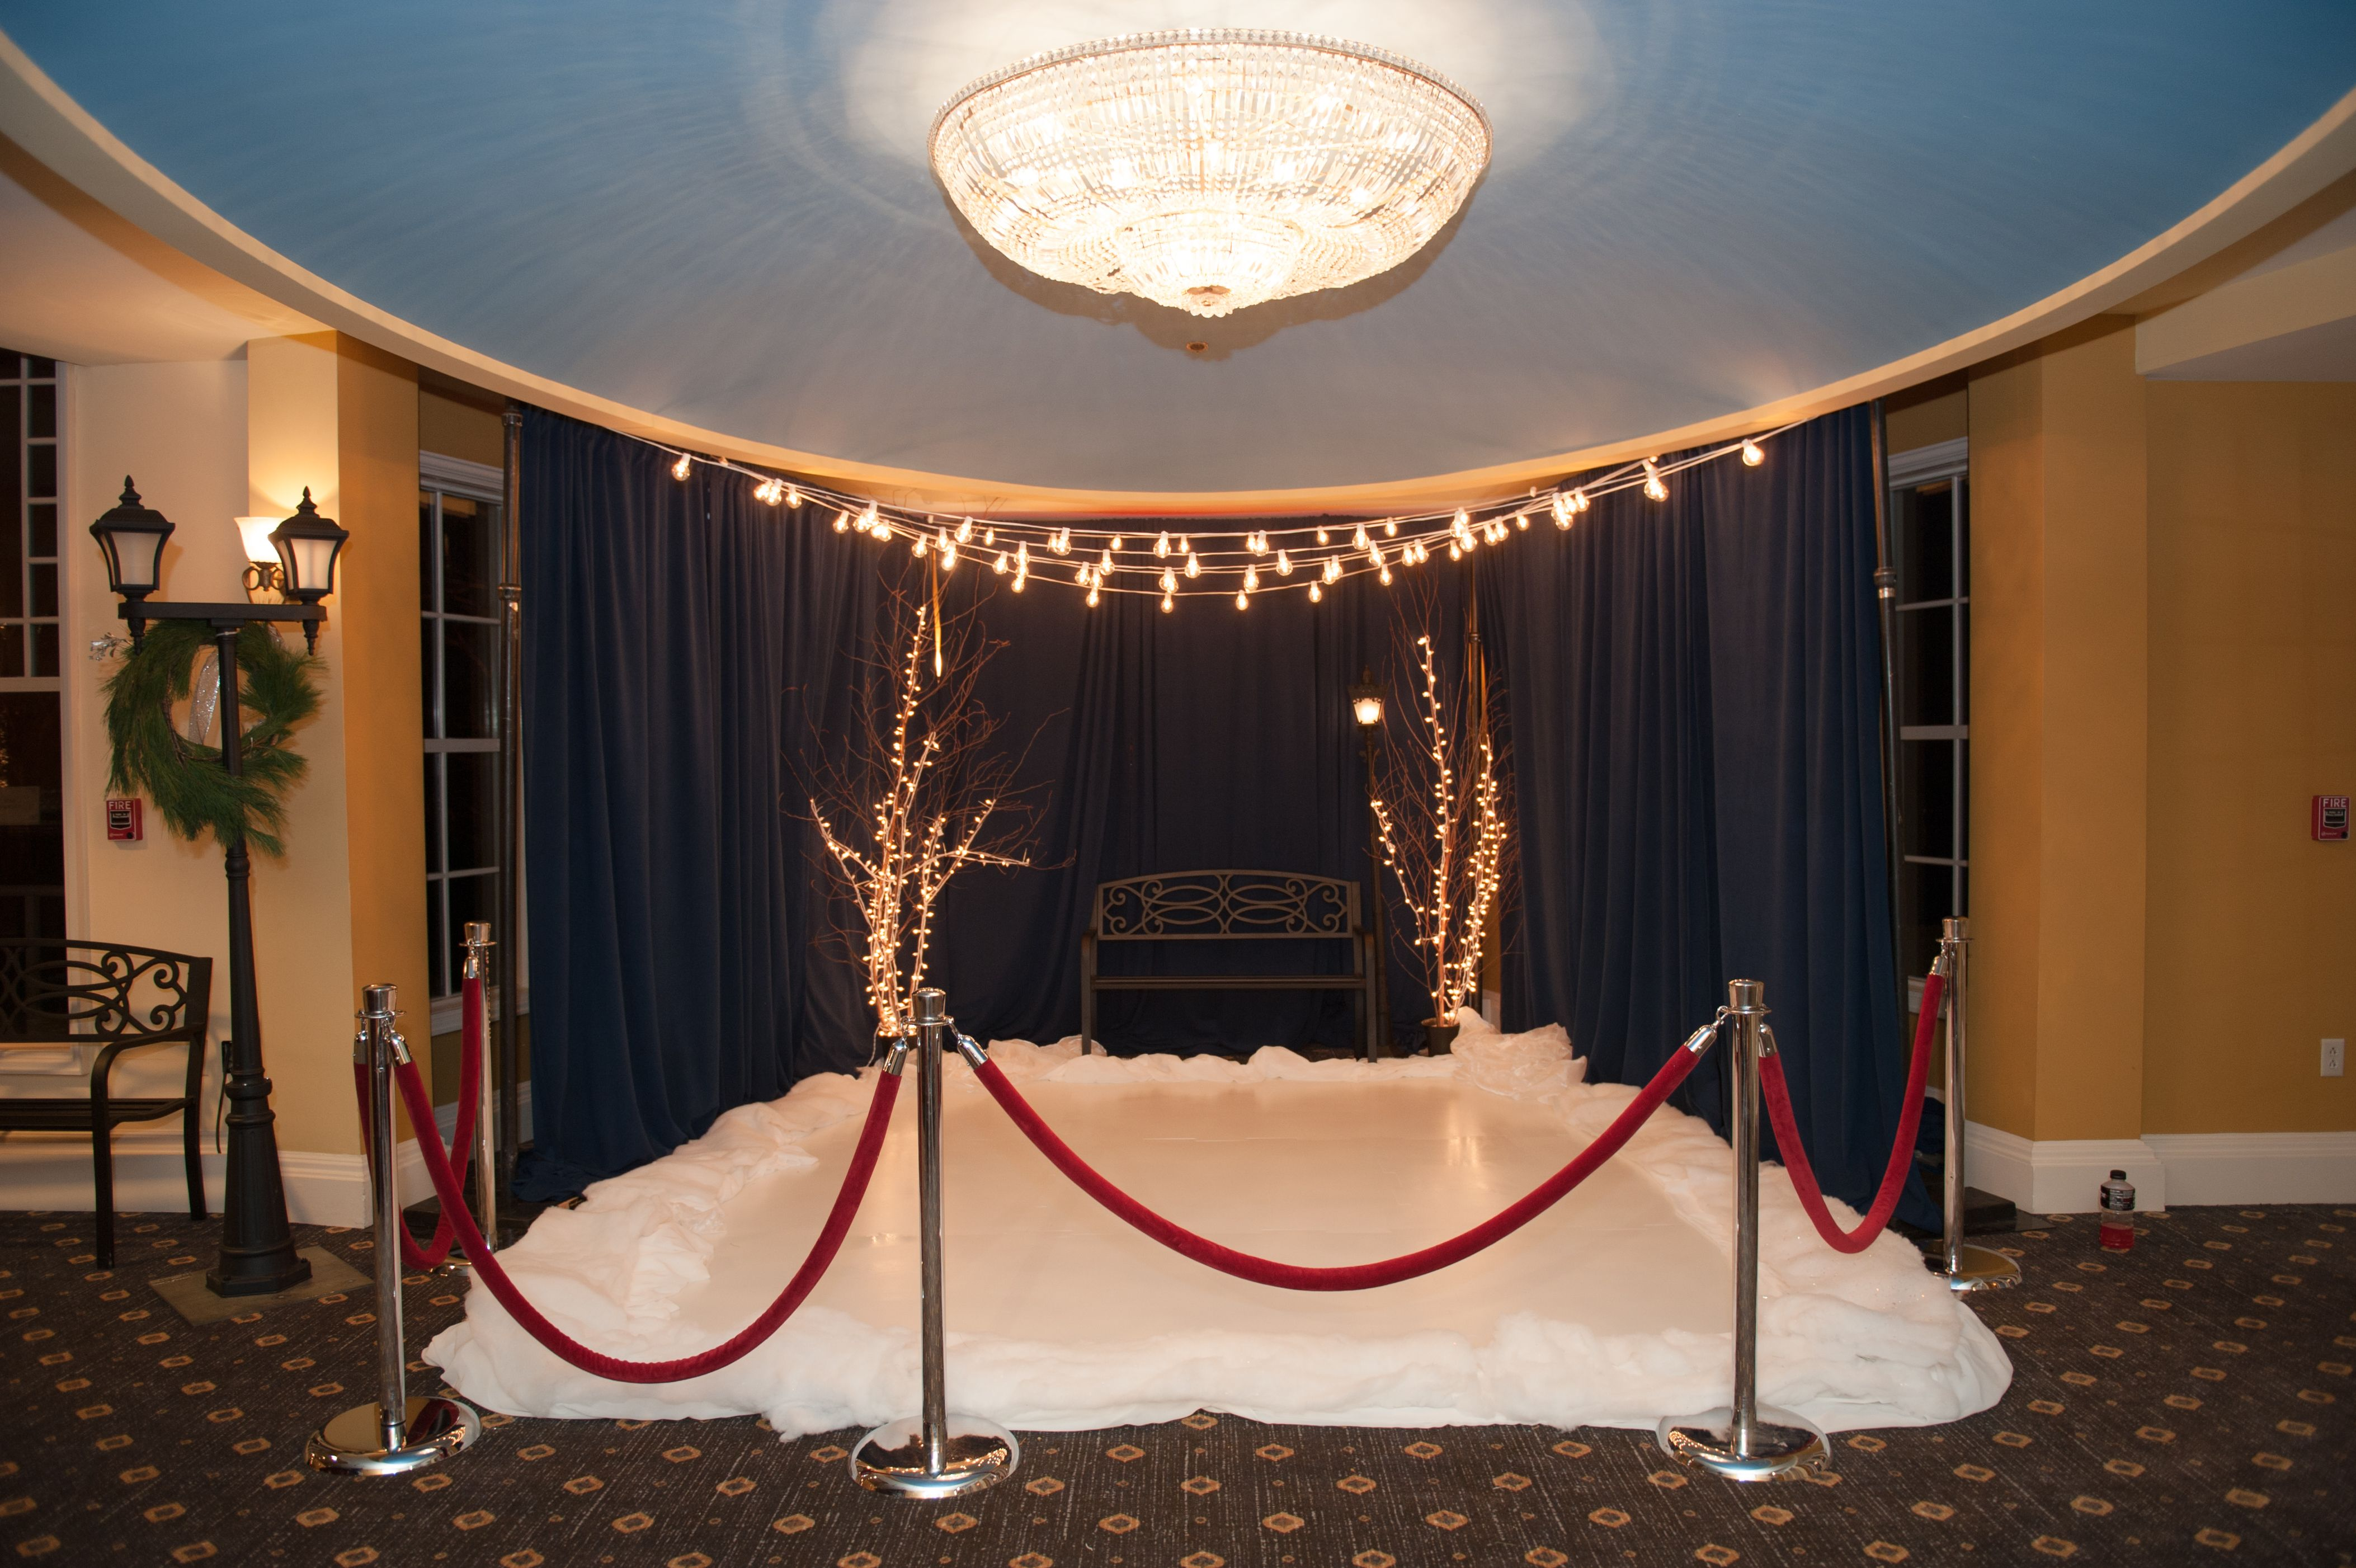 NYC-themed holiday event at Waterview in Monroe, CT - complete with an indoor ice skating rink! We love making magic happen! #powerstationevents #nycthemed